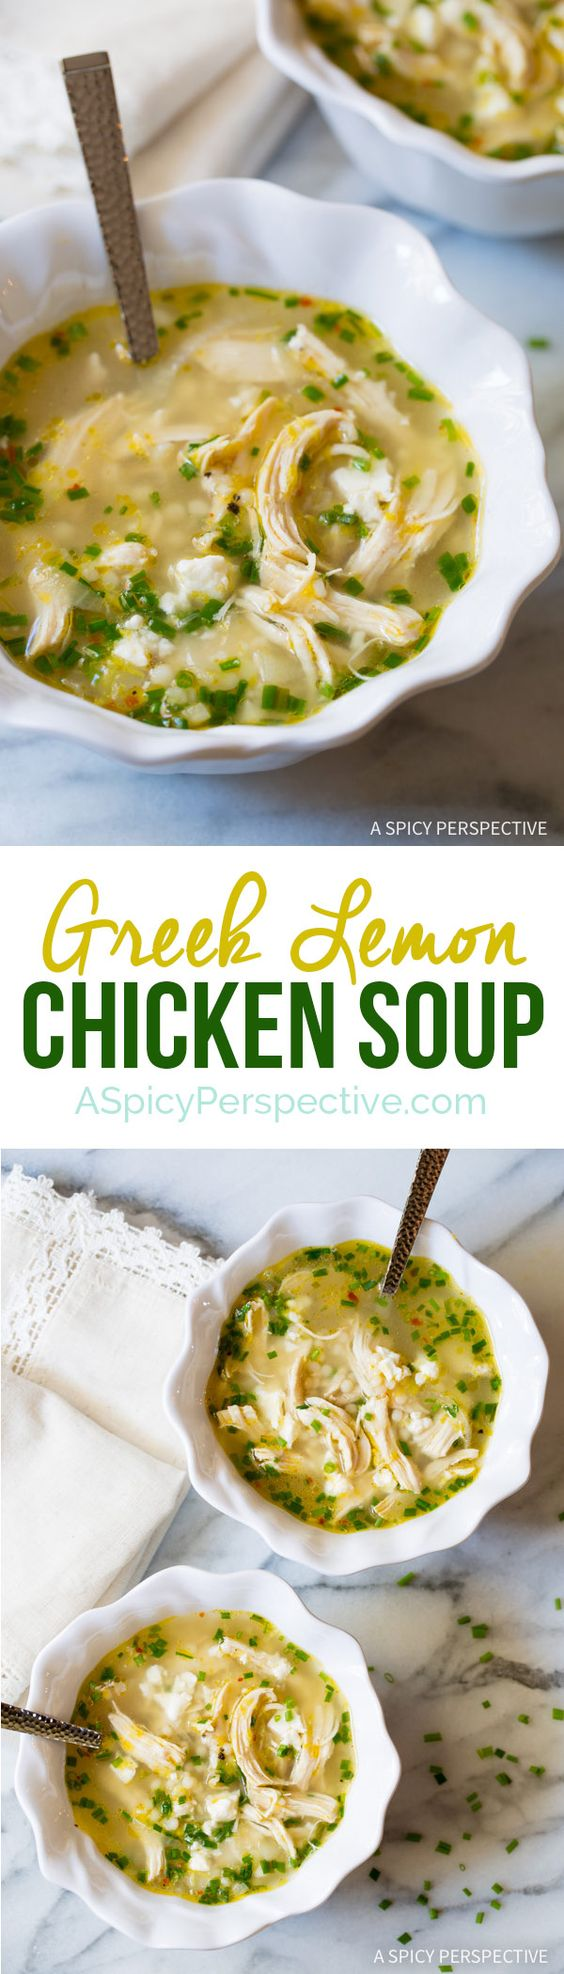 Just crazy over this Healthy Greek Lemon Chicken Soup